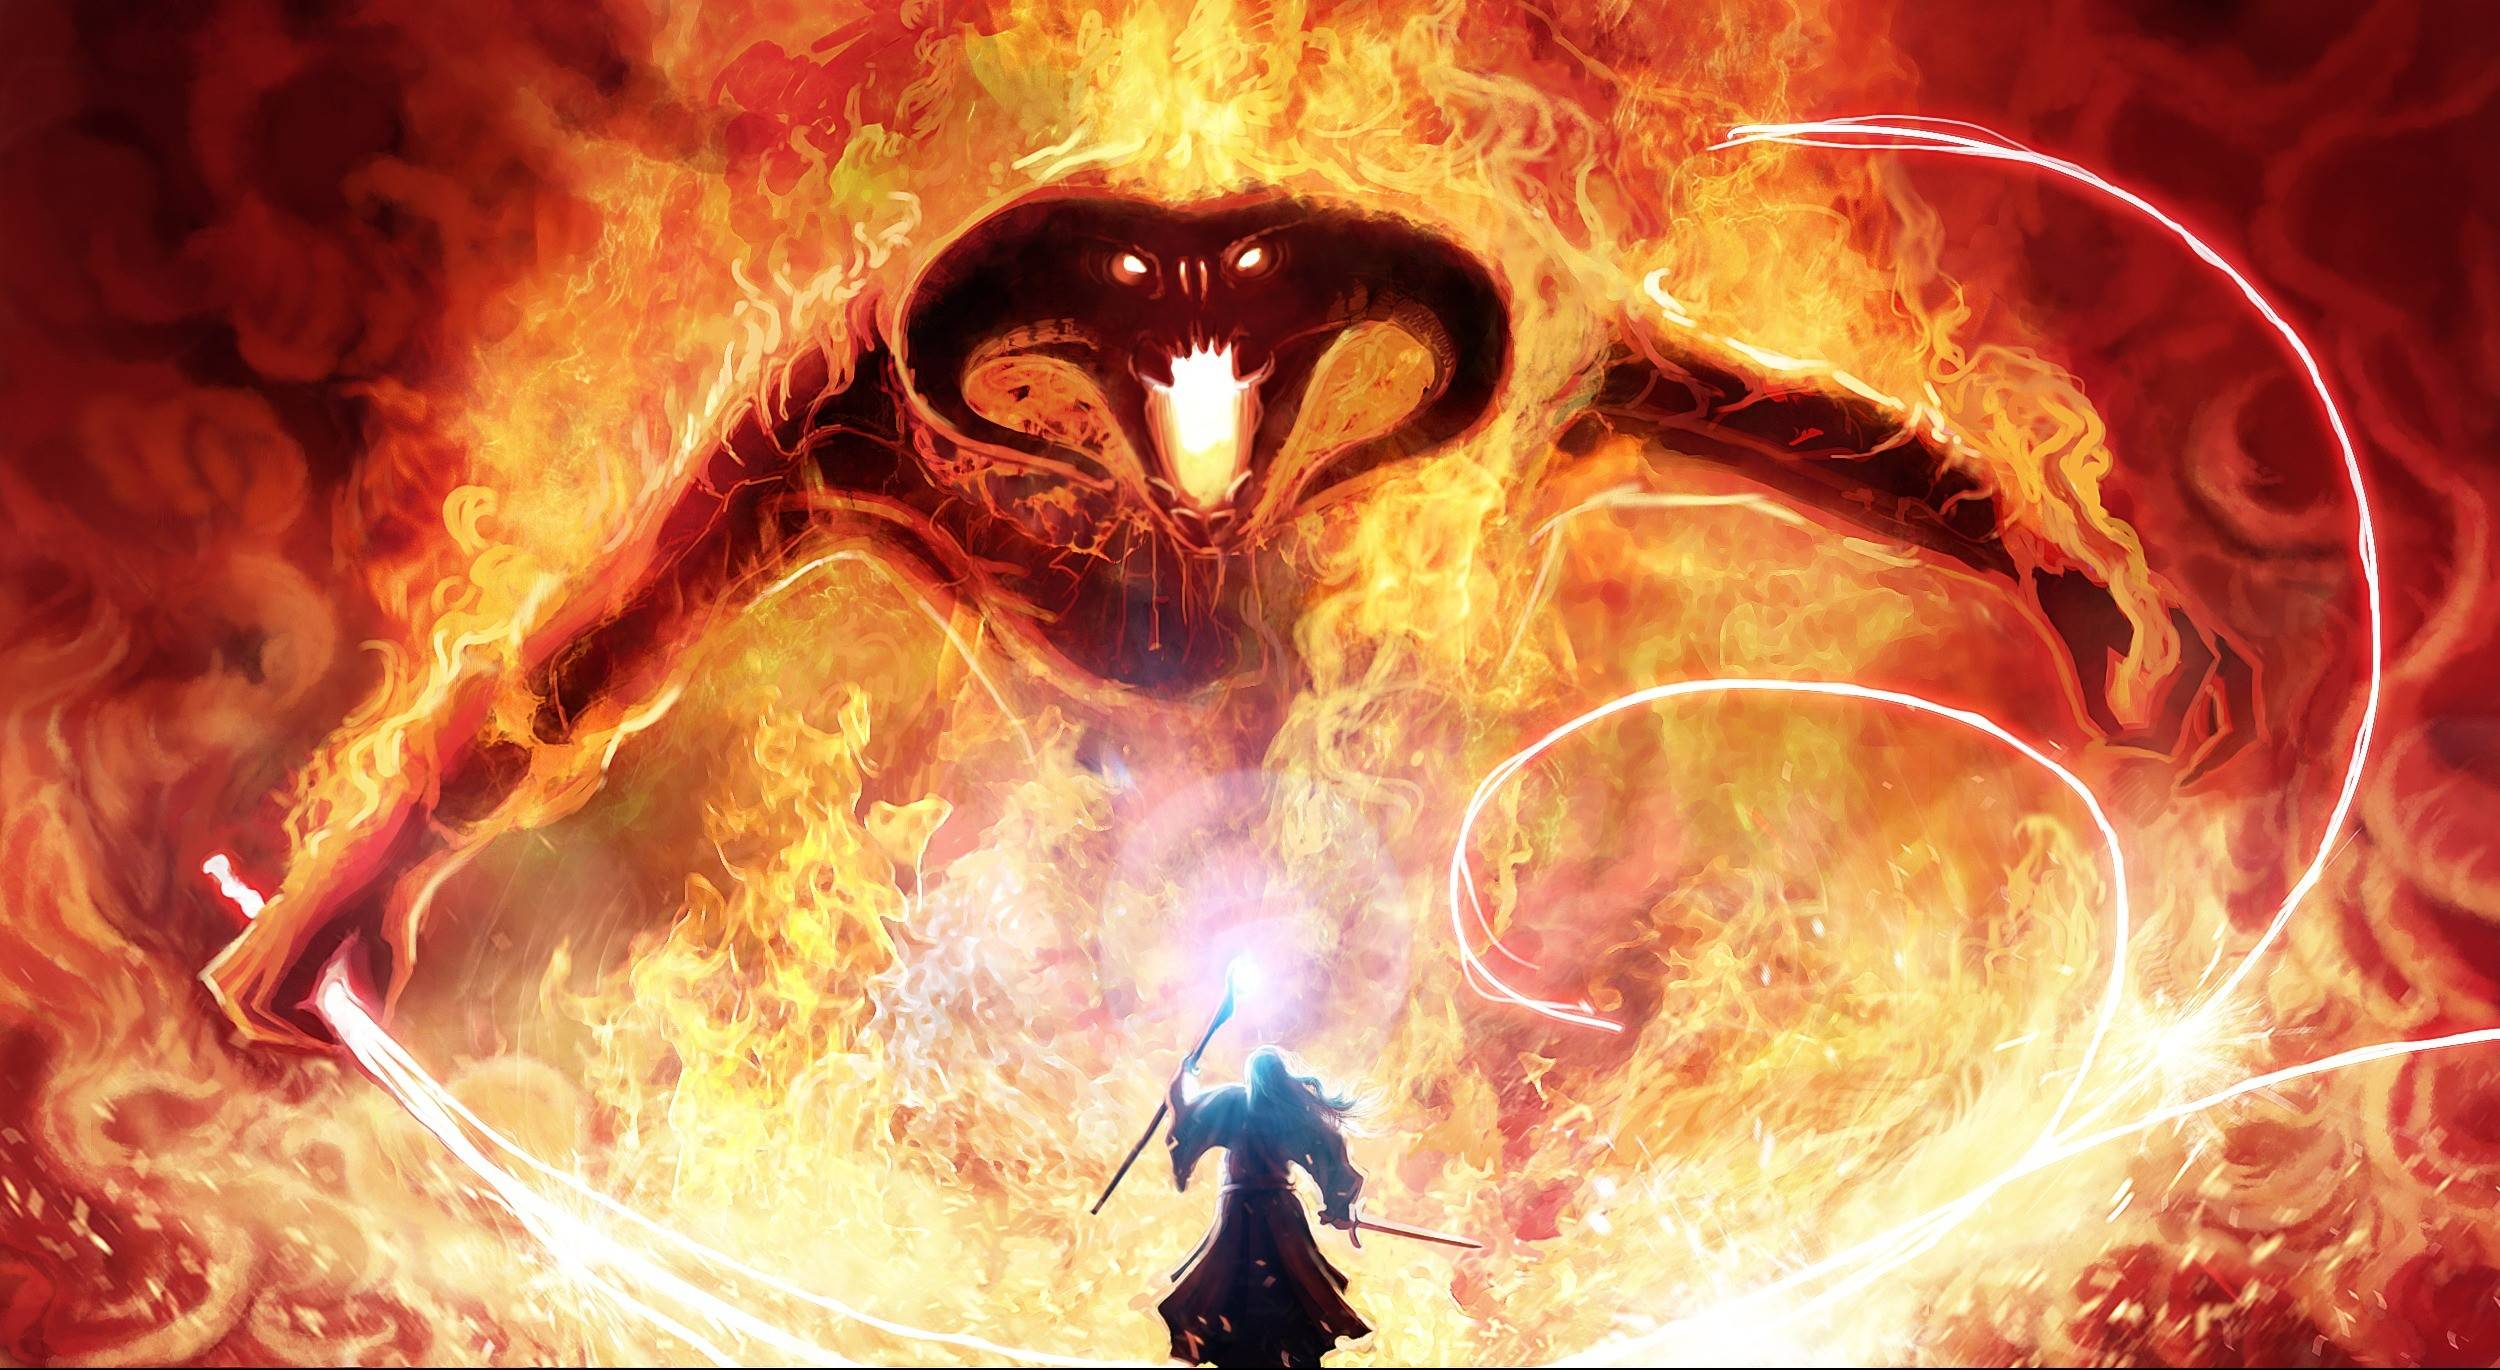 Gandalf and the Balrog HD Wallpaper Download HD Wallpapers 2500x1370